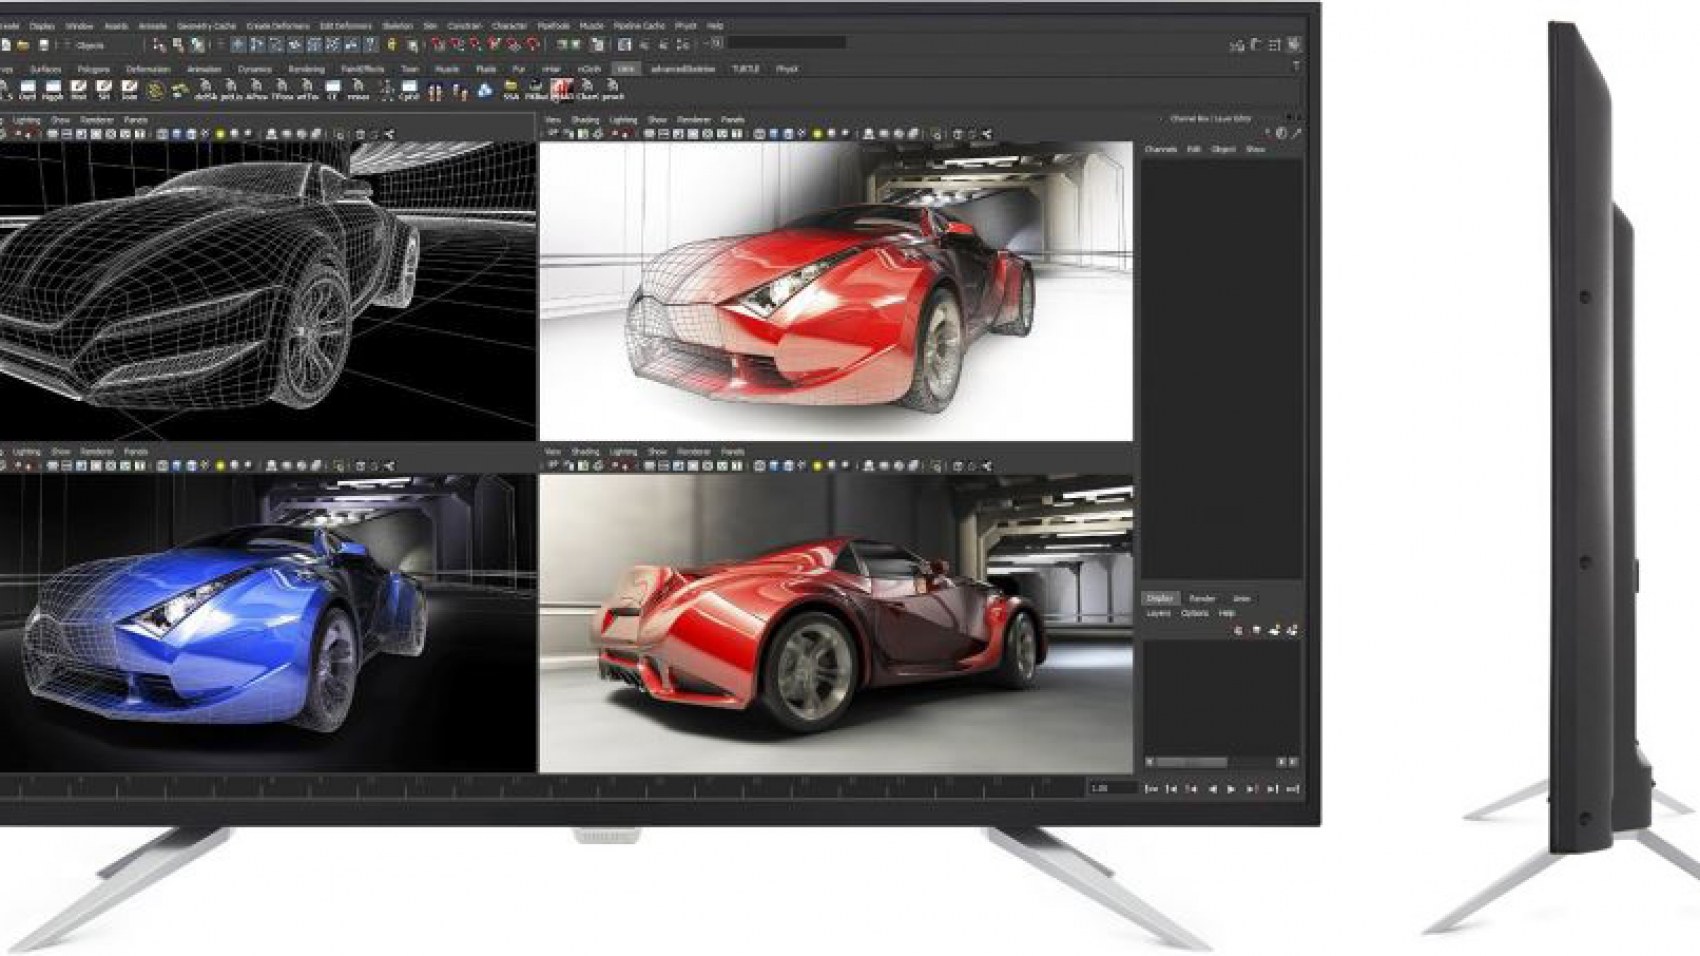 Philips 43 inches 4K monitor